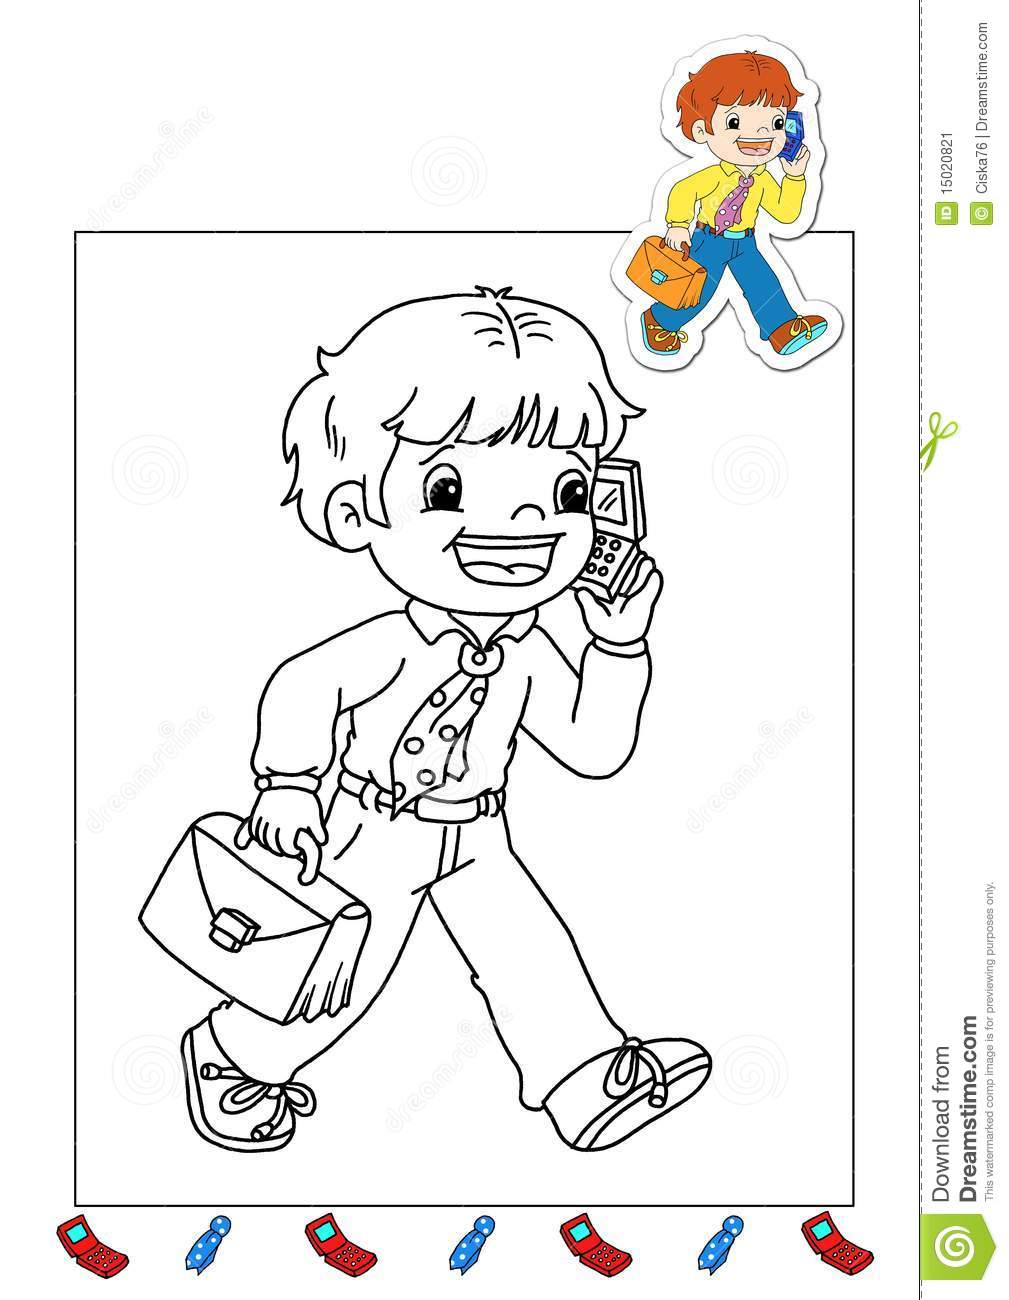 Coloring Book Of The Works 18 Manager Stock Illustration